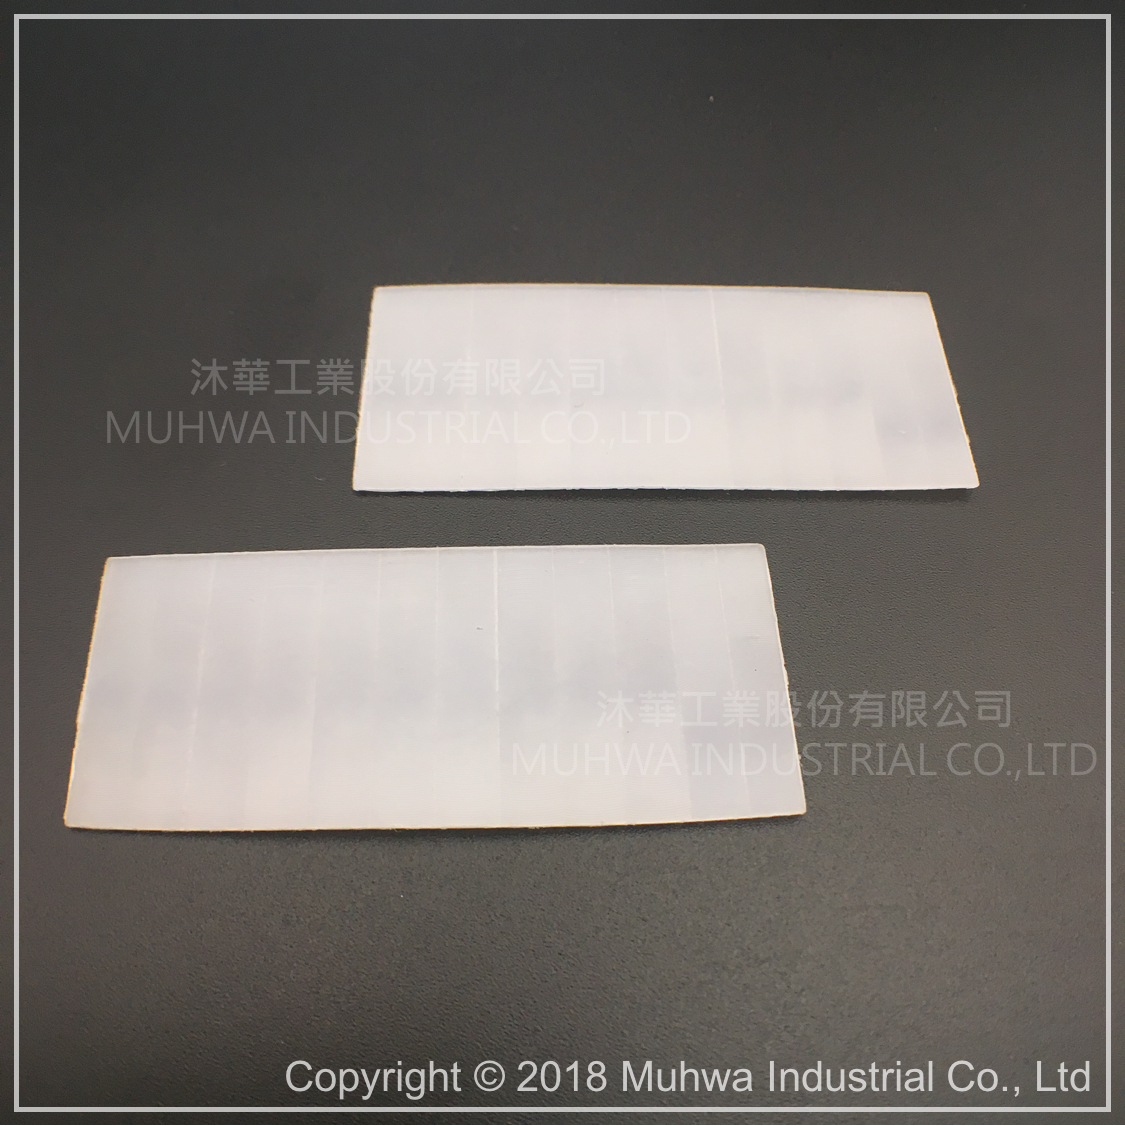 High quality Curved Fresnel Lens Quotes,China Curved Fresnel Lens Factory,Curved Fresnel Lens Purchasing